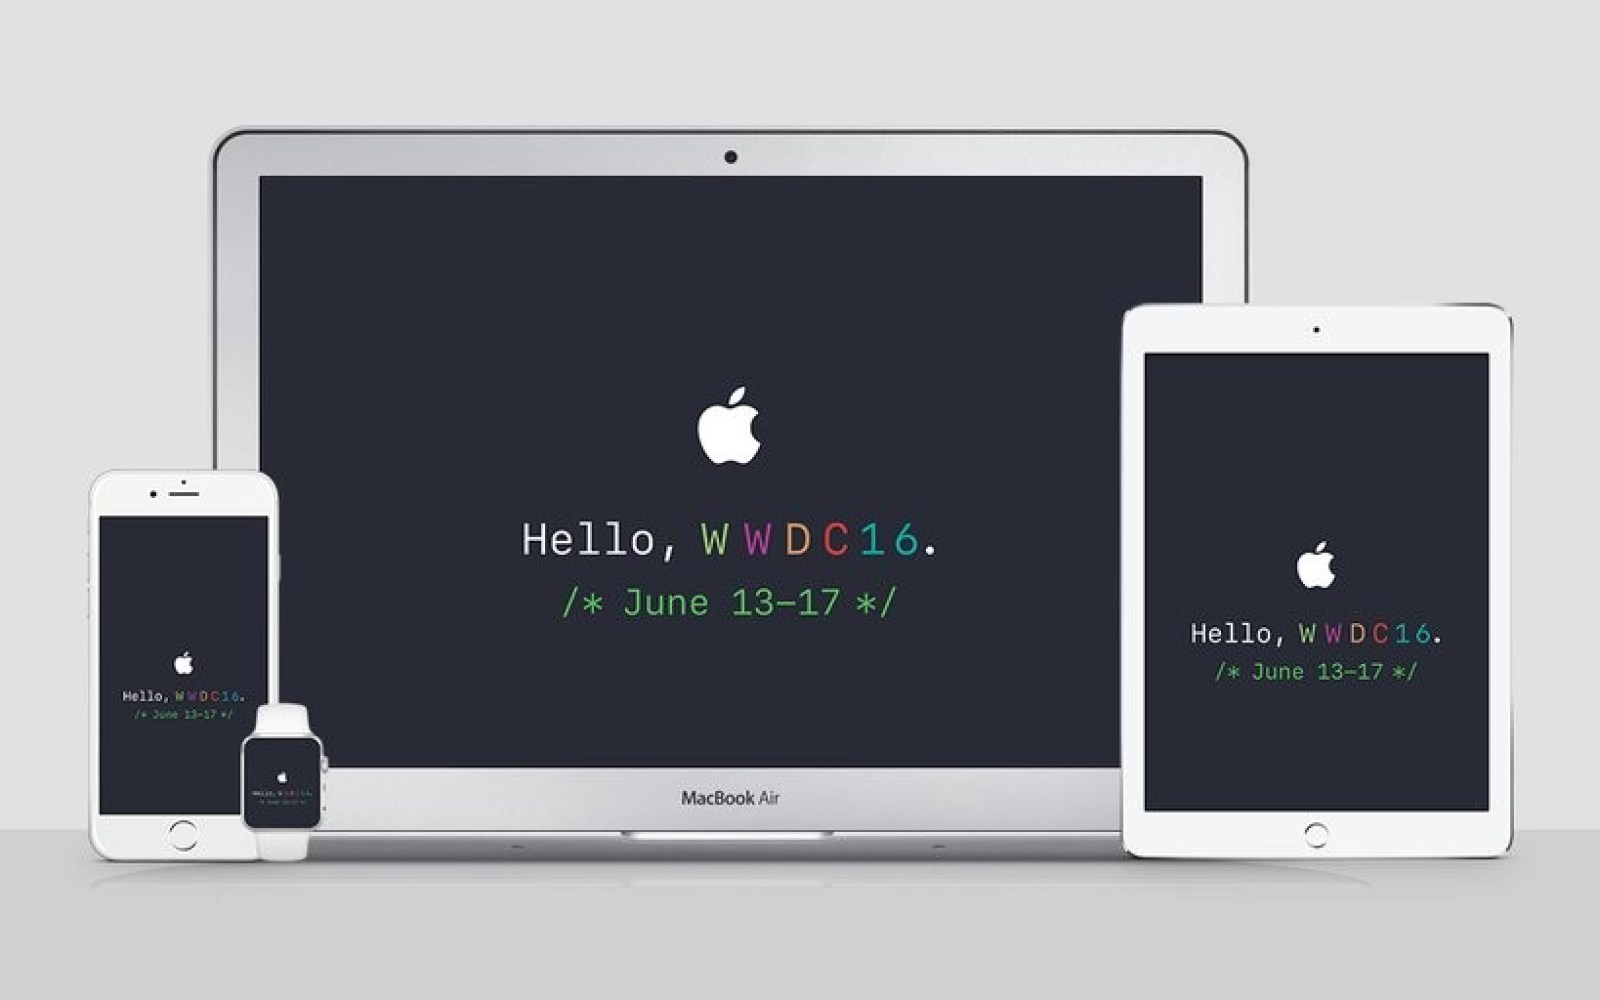 How to watch Apple's WWDC 2016 keynote live stream on Windows or Android